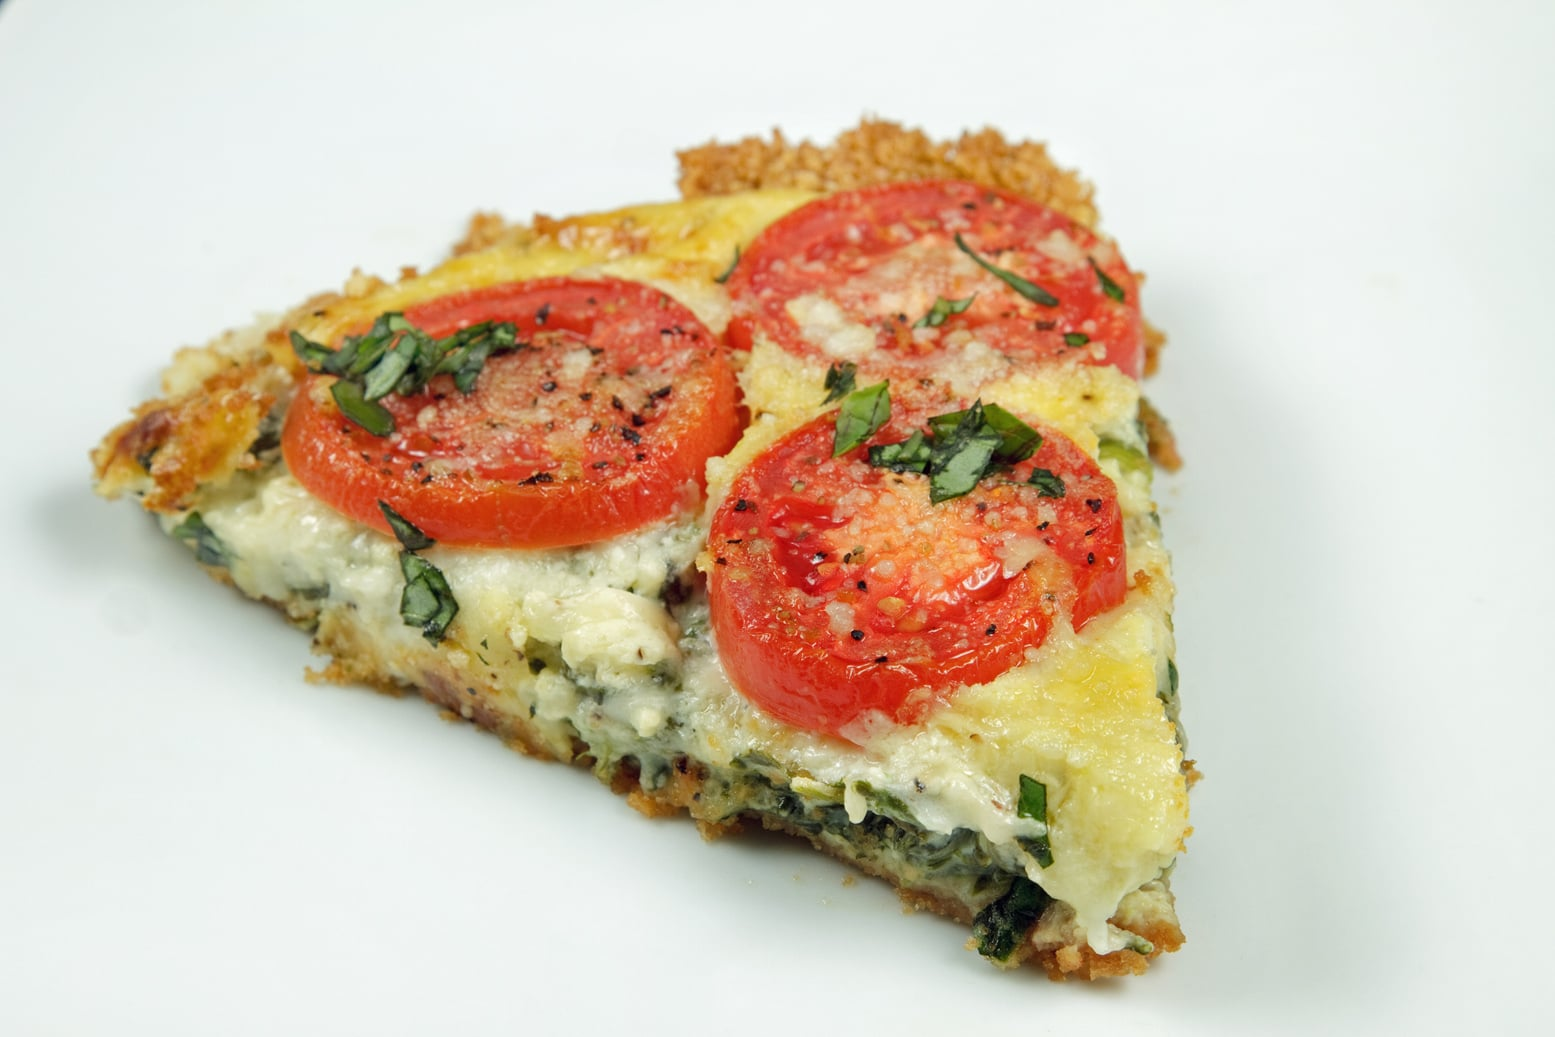 Spinach-Tomato Tart my Guest Post on Cooking's Good Vegetarian Cafe